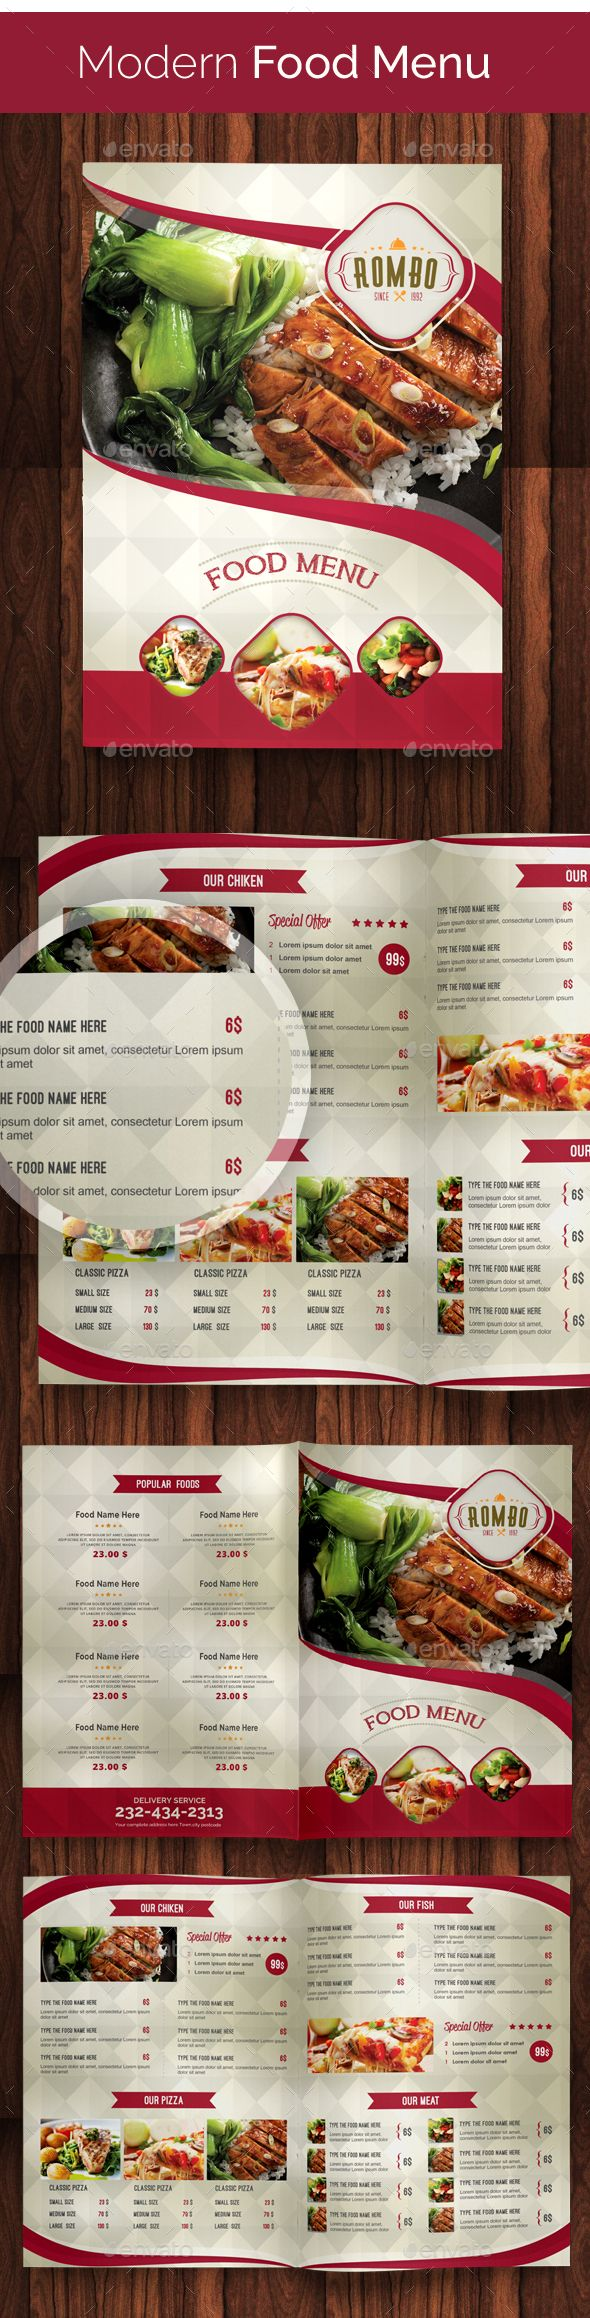 Best    Images On   Menu Templates